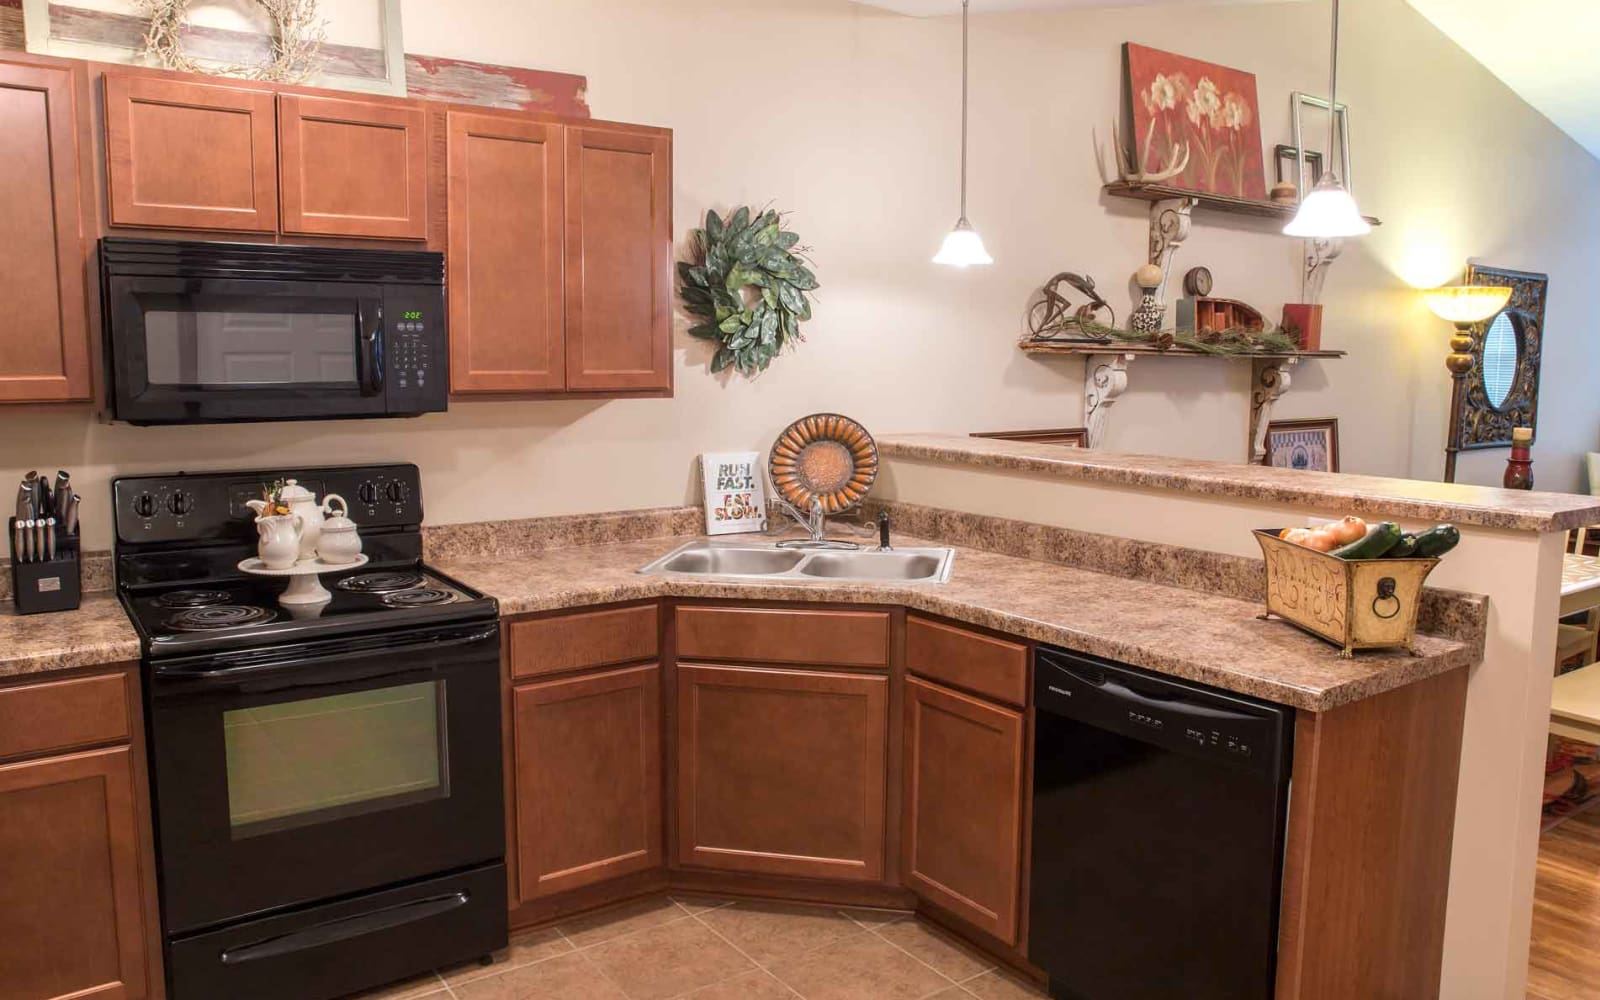 Apartment kitchen with tile flooring at Woodland Reserve in Ankeny, Iowa